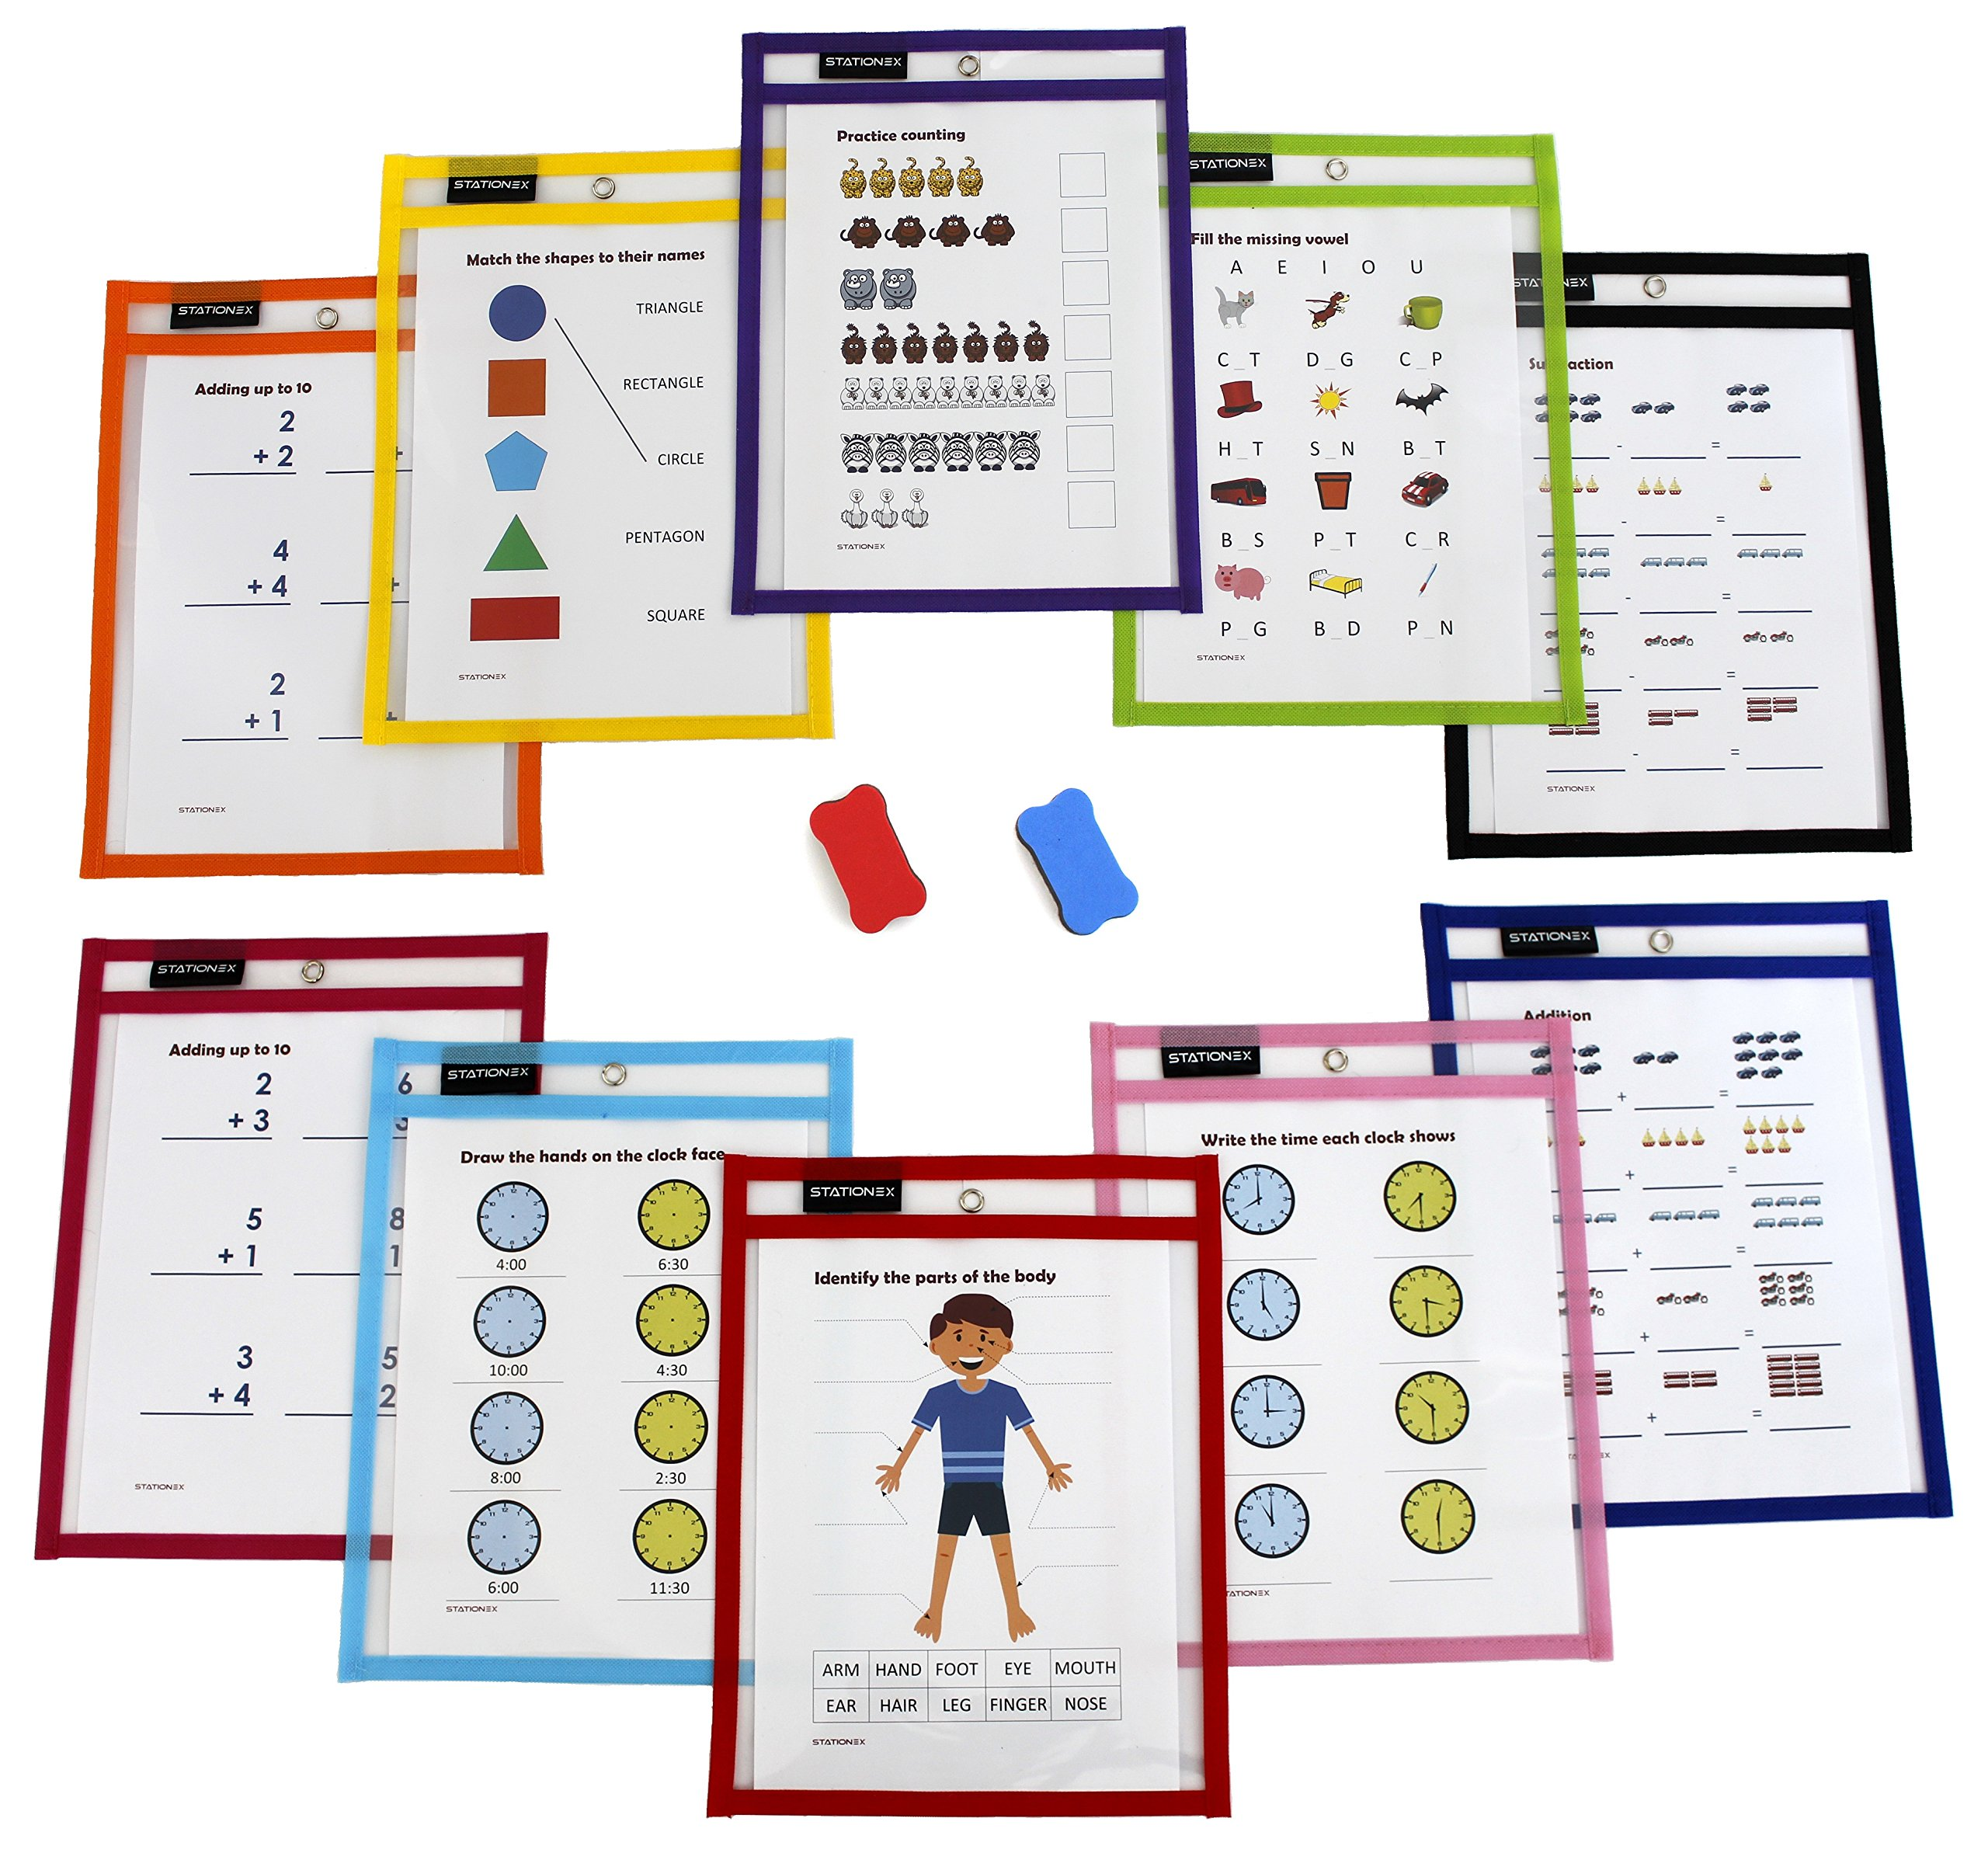 Reusable Dry Erase Pockets, Large Size 10 x 13 Inches, 10 Assorted Color Write and Wipe Off Sleeves + 2 Erasers per Pack - by Stationex